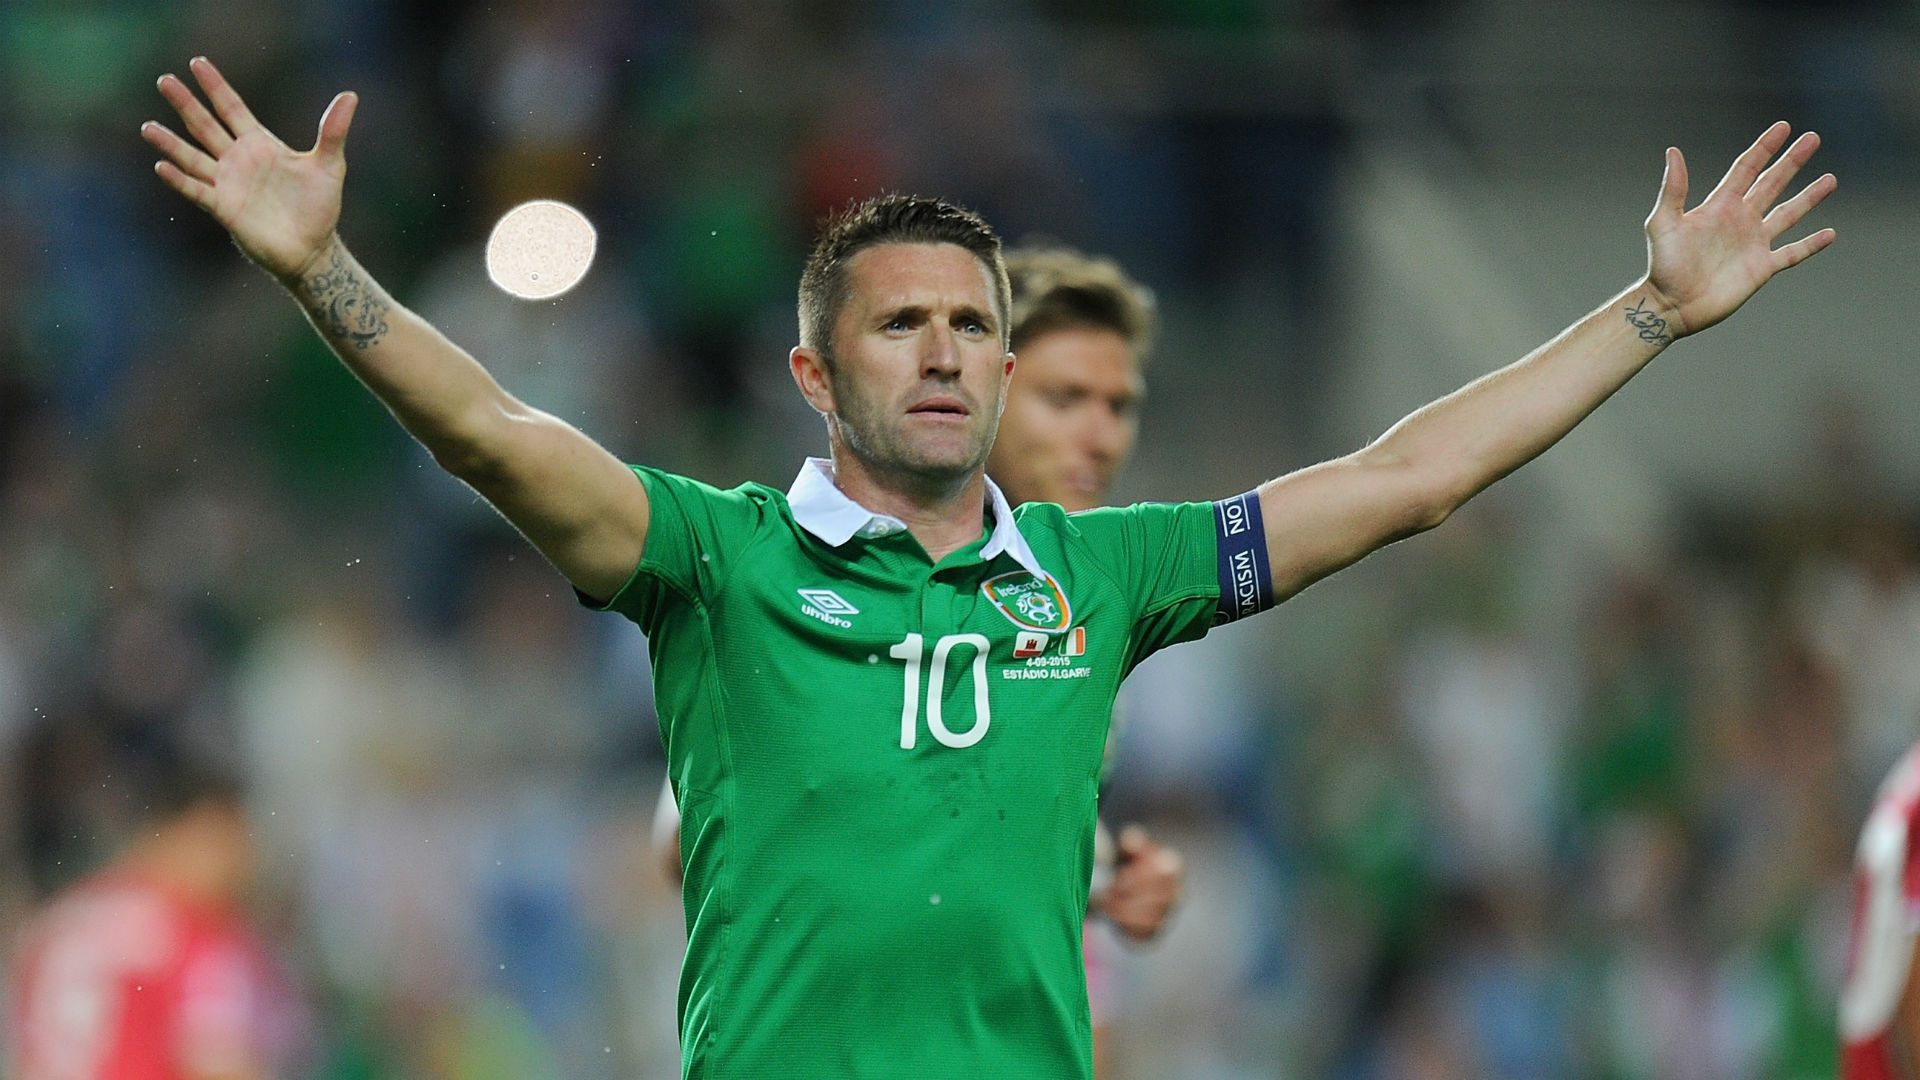 Robbie Keane Republic of Ireland